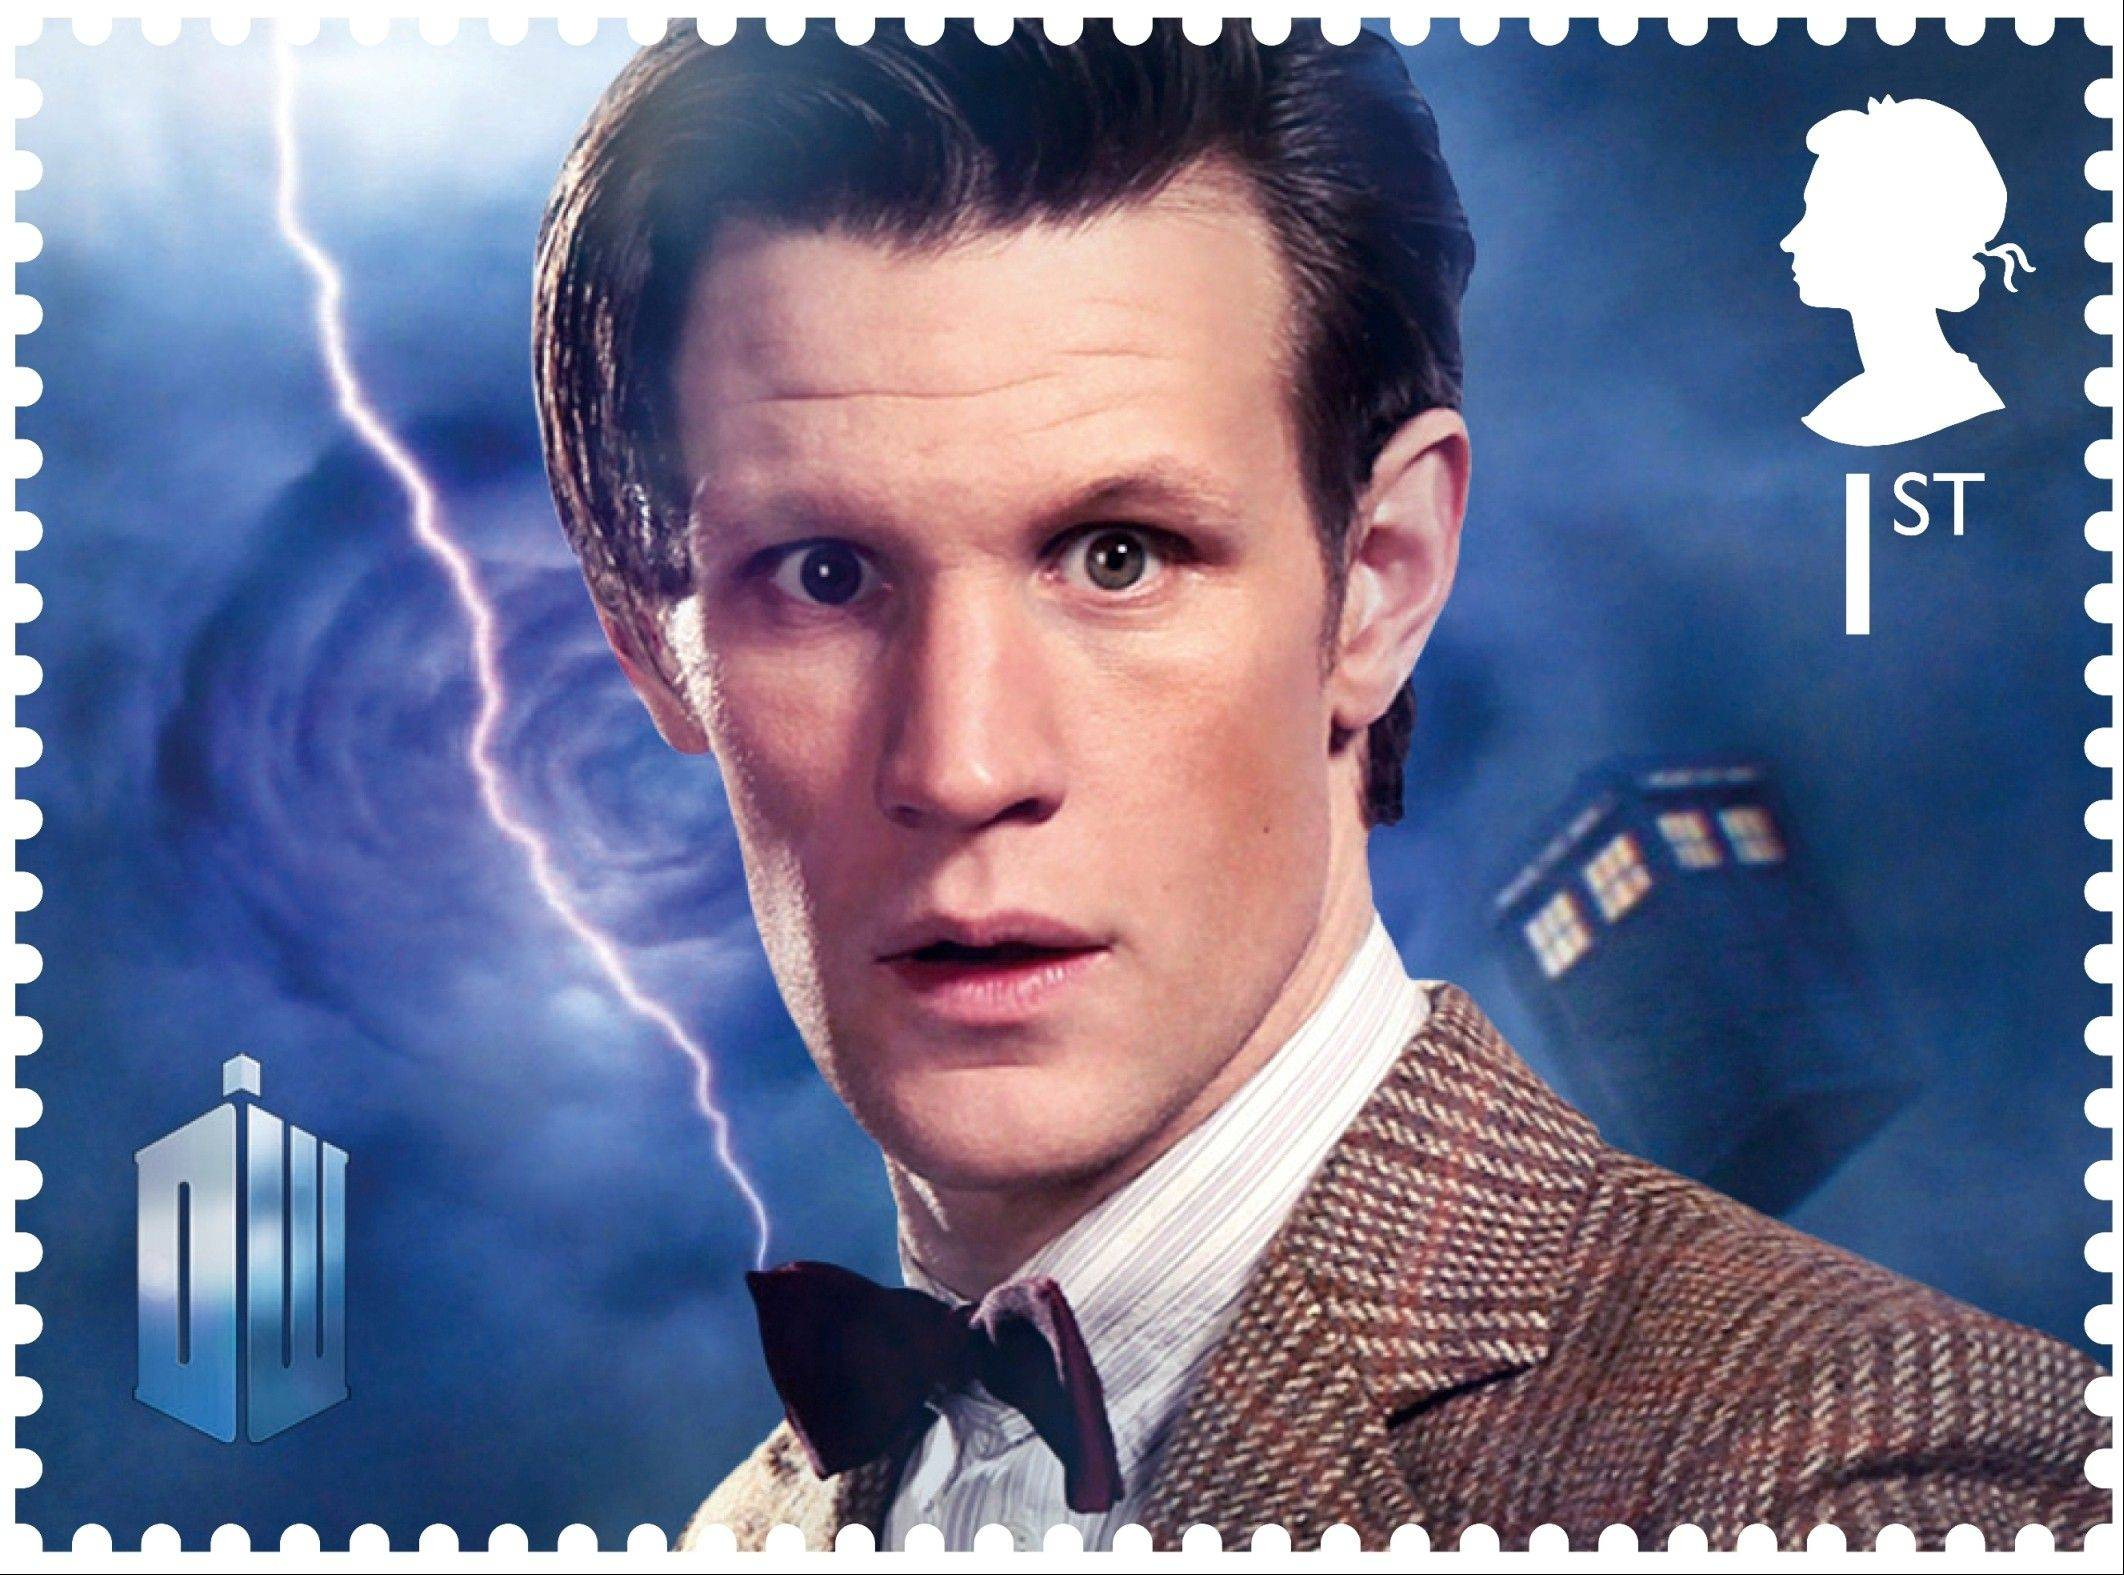 Britain�s Royal Mail is marking the 50th anniversary of �Doctor Who,�� the science fiction program, with a series of stamps featuring each of the 11 actors who have played the title role. Those featured include the present doctor, Matt Smith as well as past Time Lords.